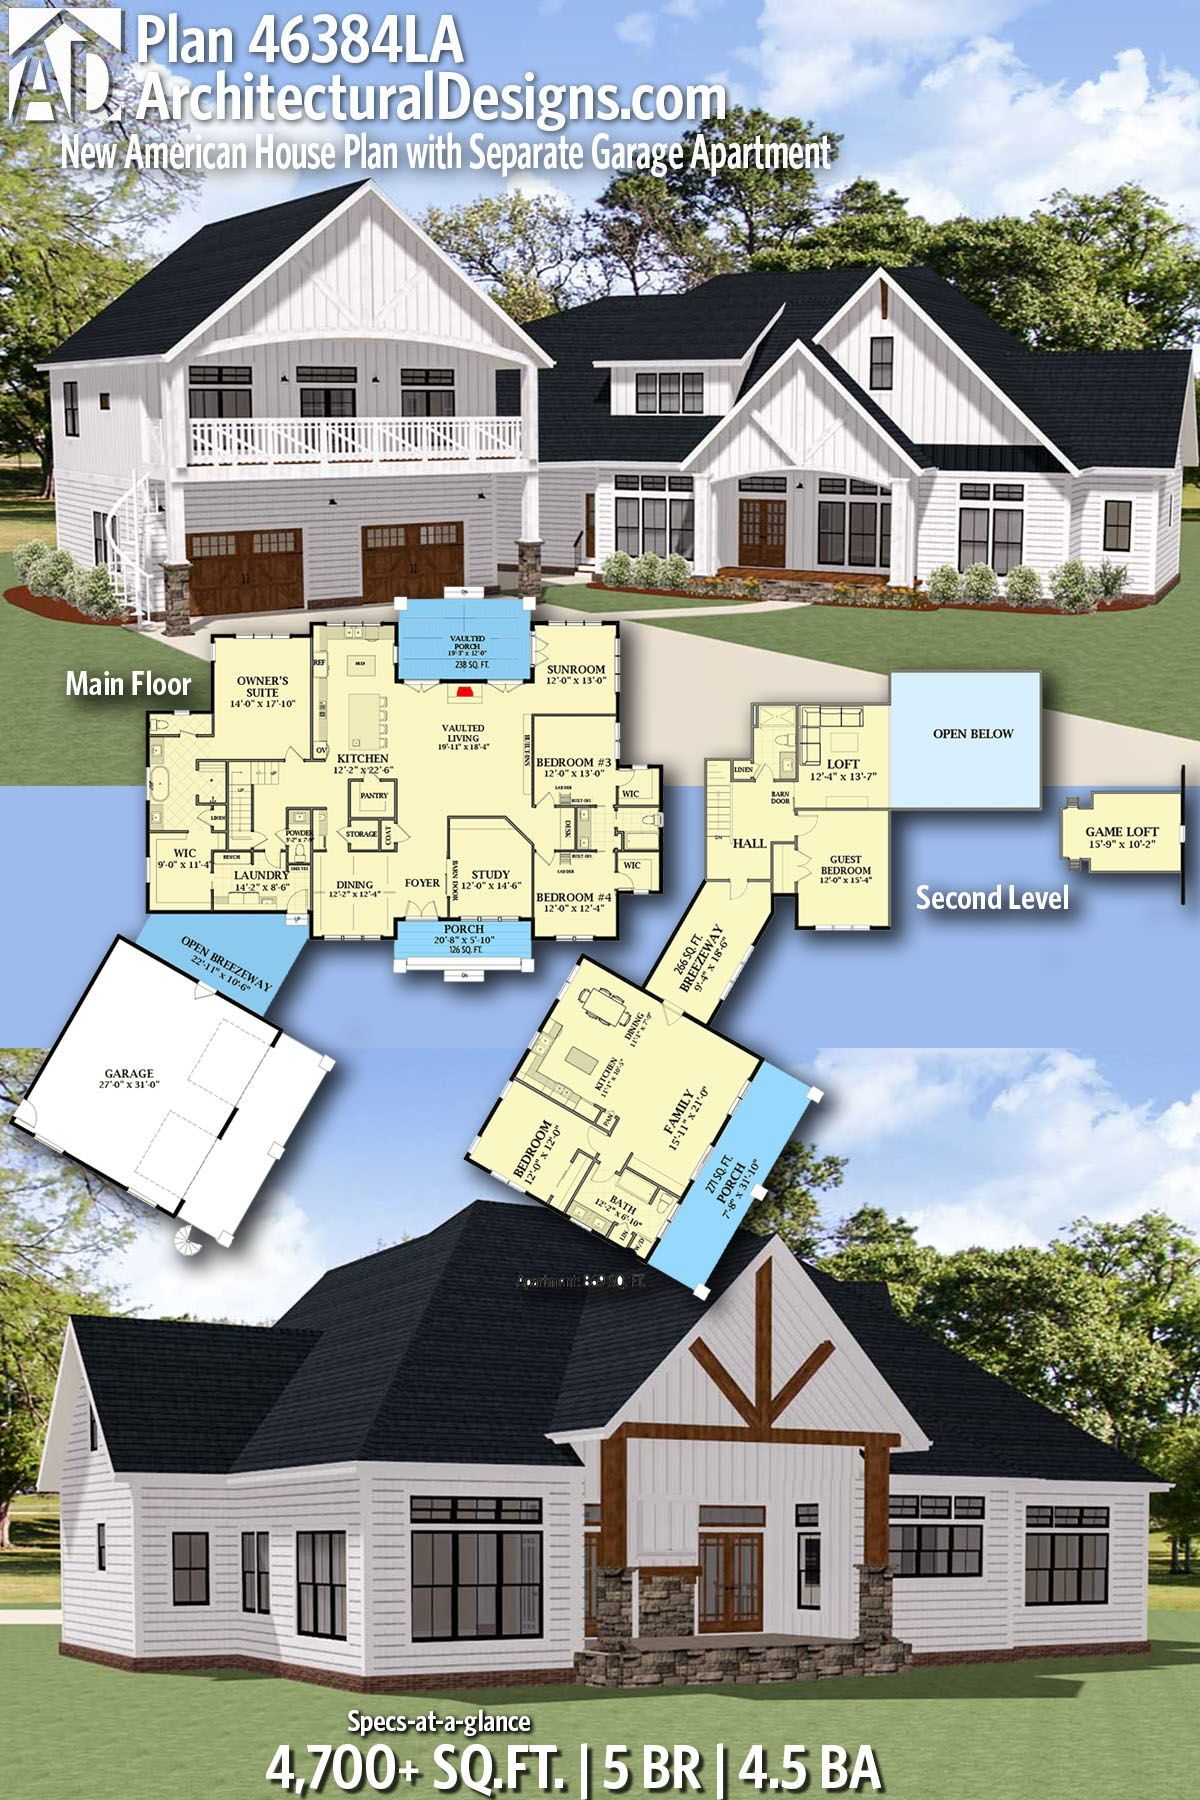 120 Aaa Homes With Attached Guest Suites Ideas House Plans House Floor Plans Multigenerational House